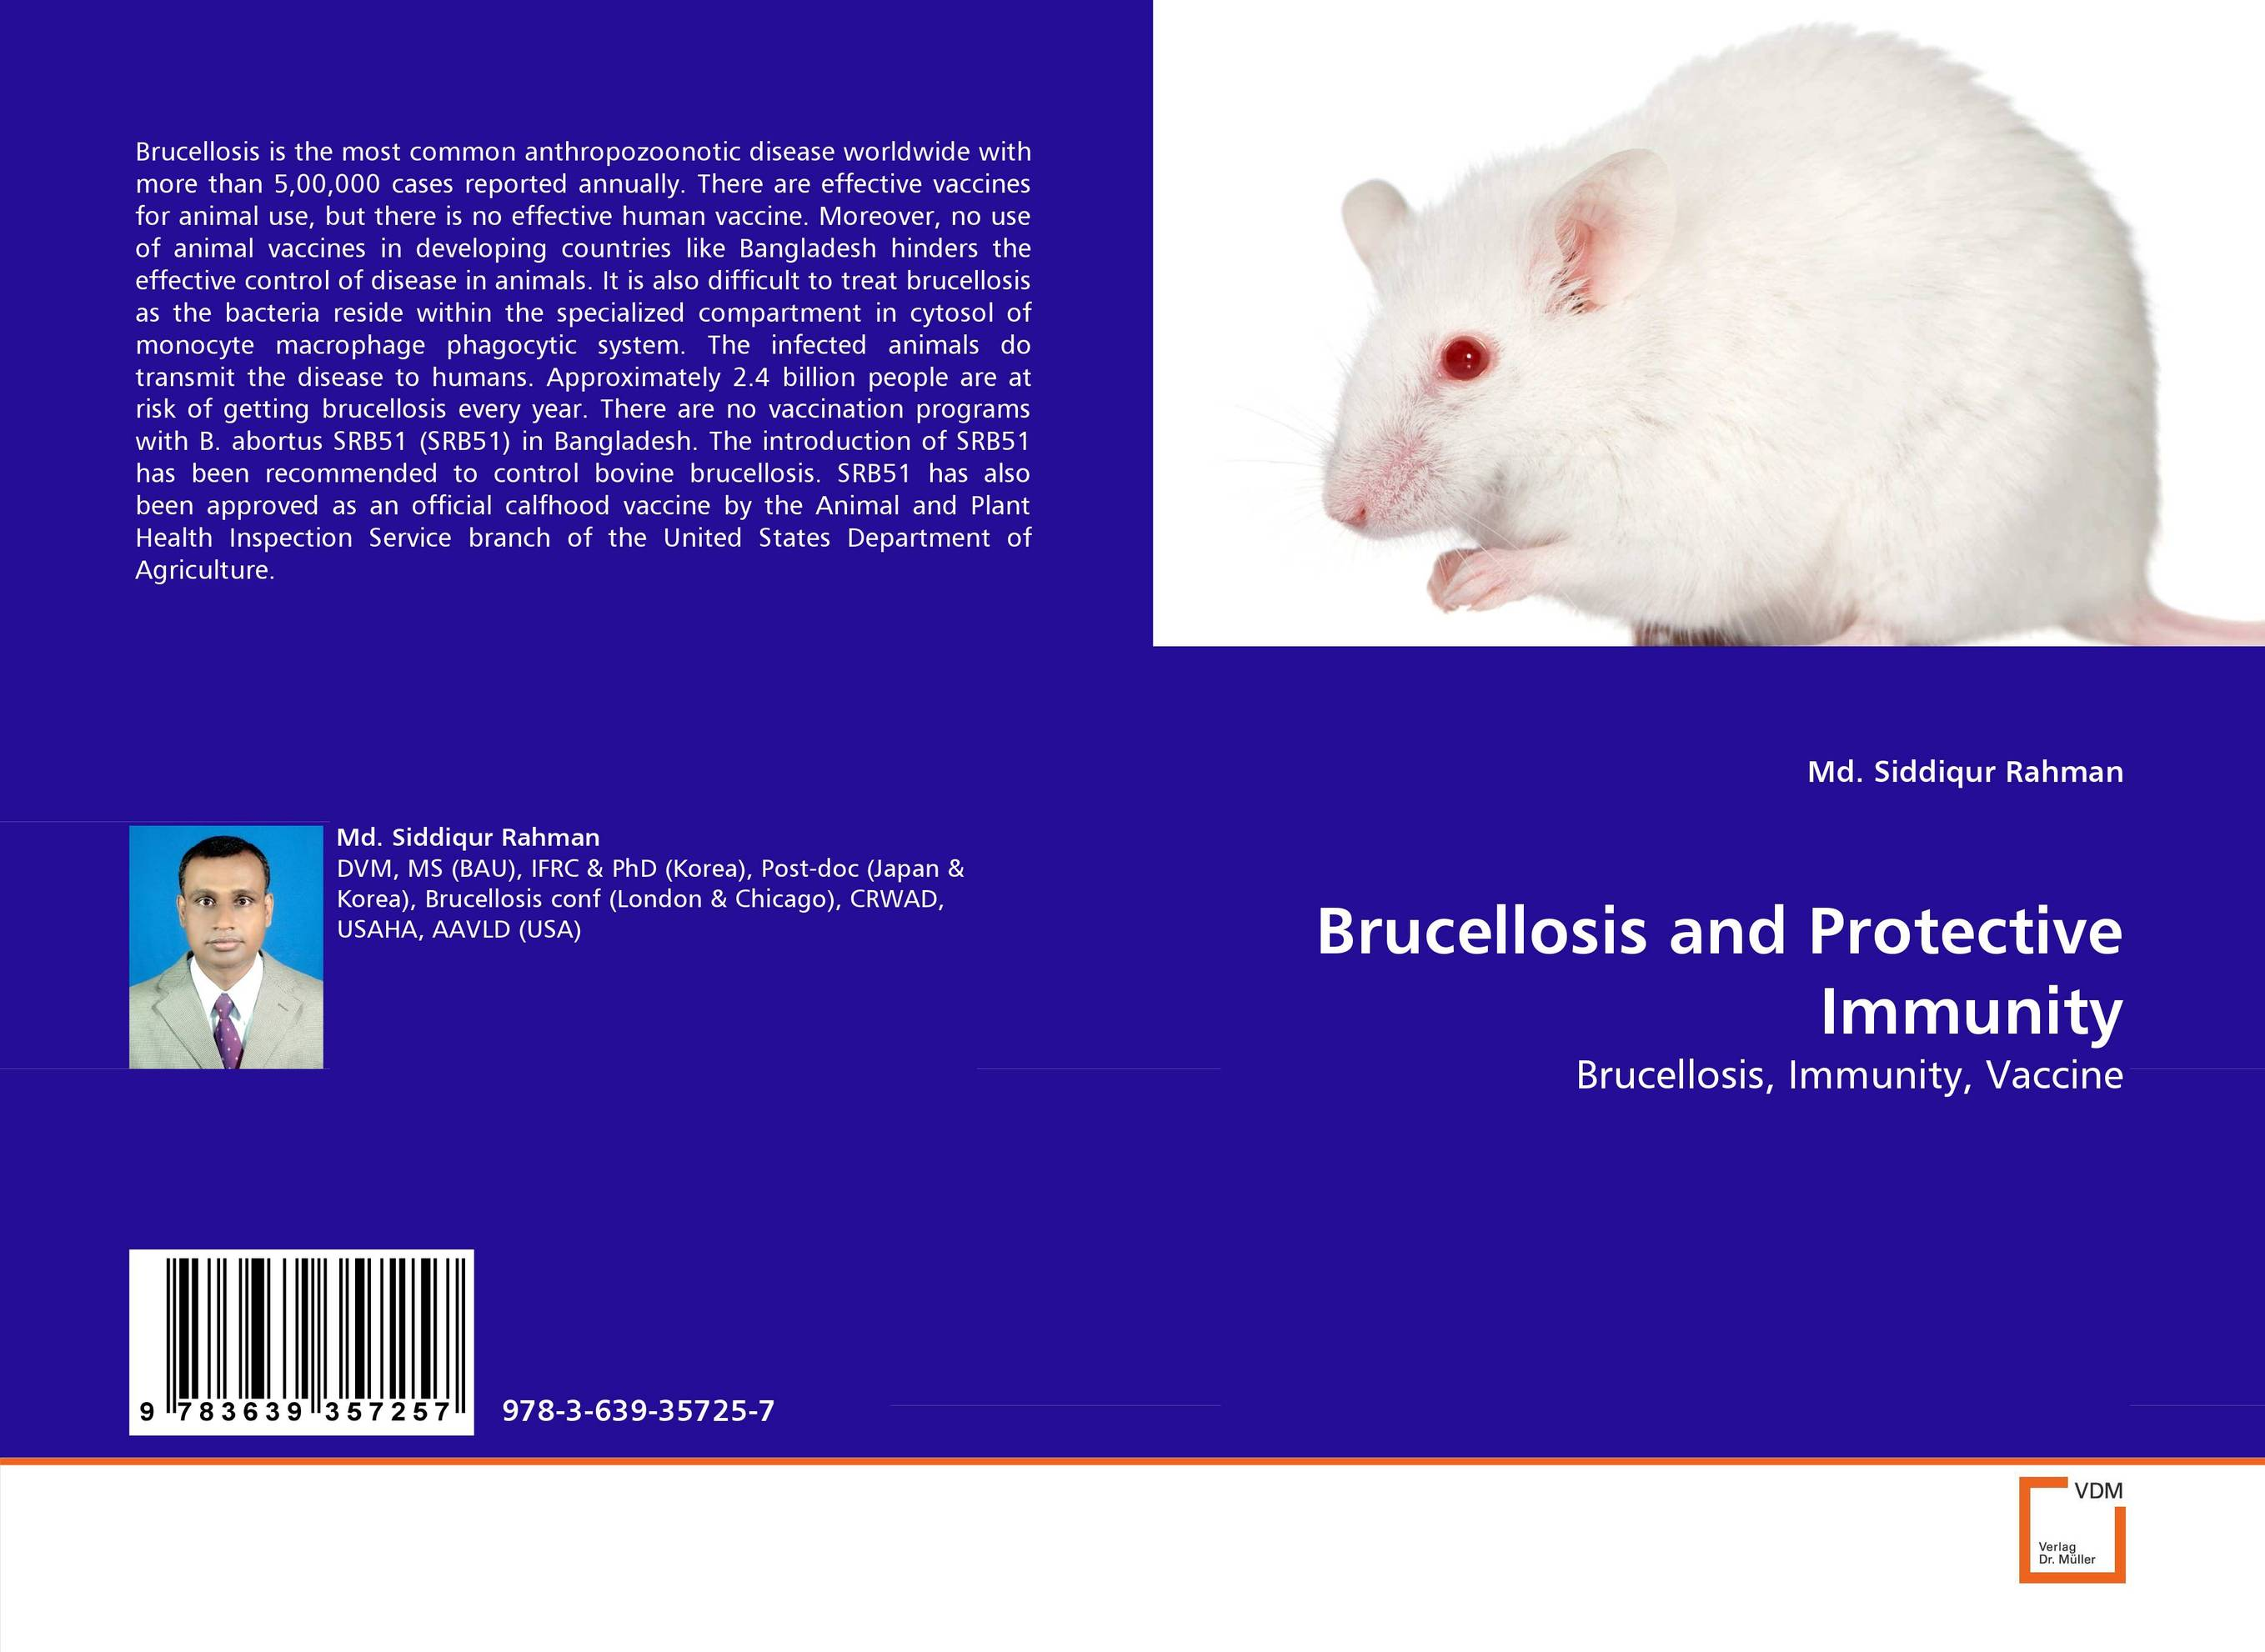 Brucellosis and Protective Immunity animal traction in the fadama